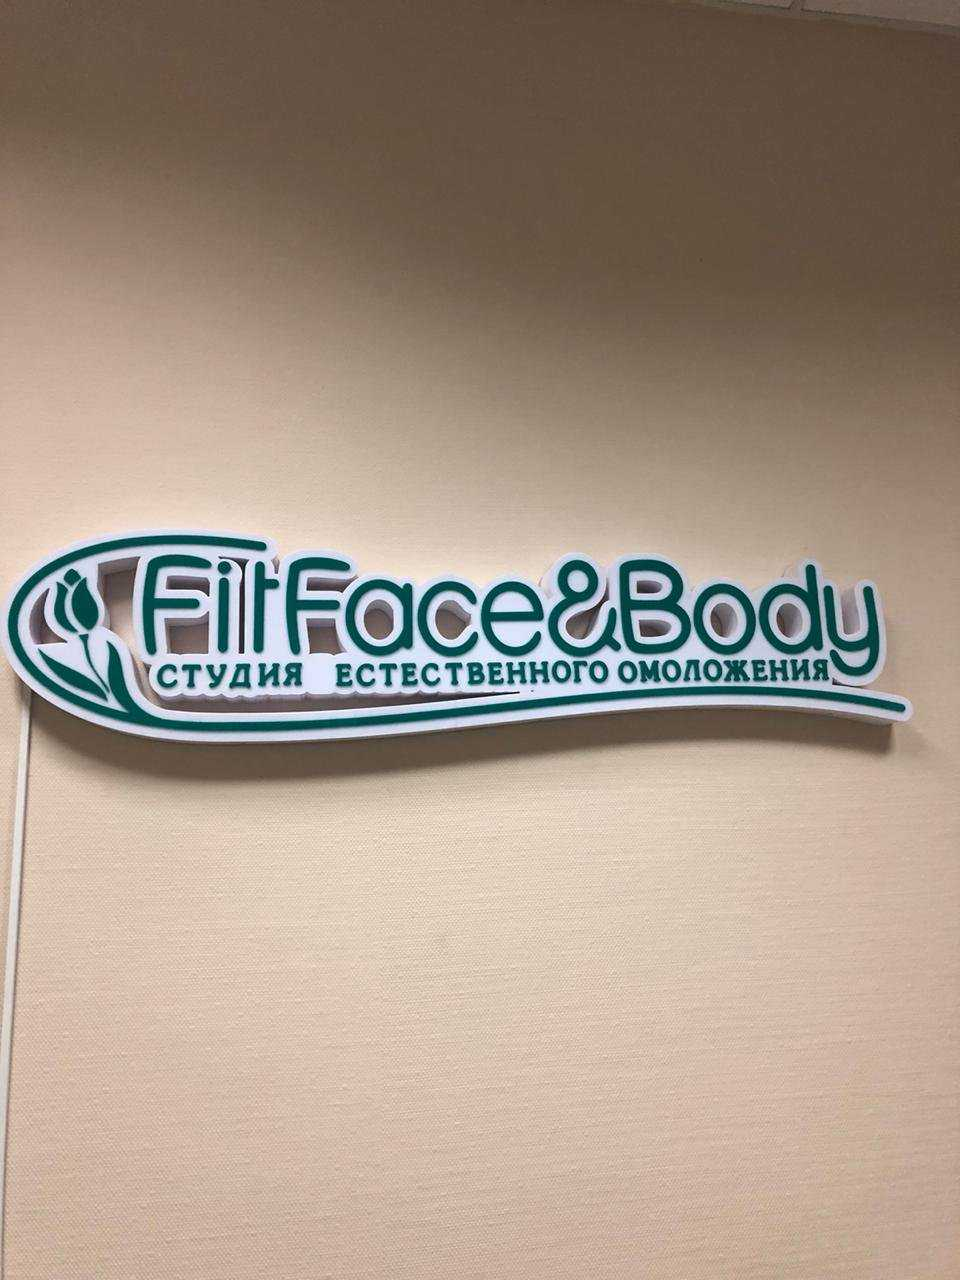 студия Fit Face and Body фото 1